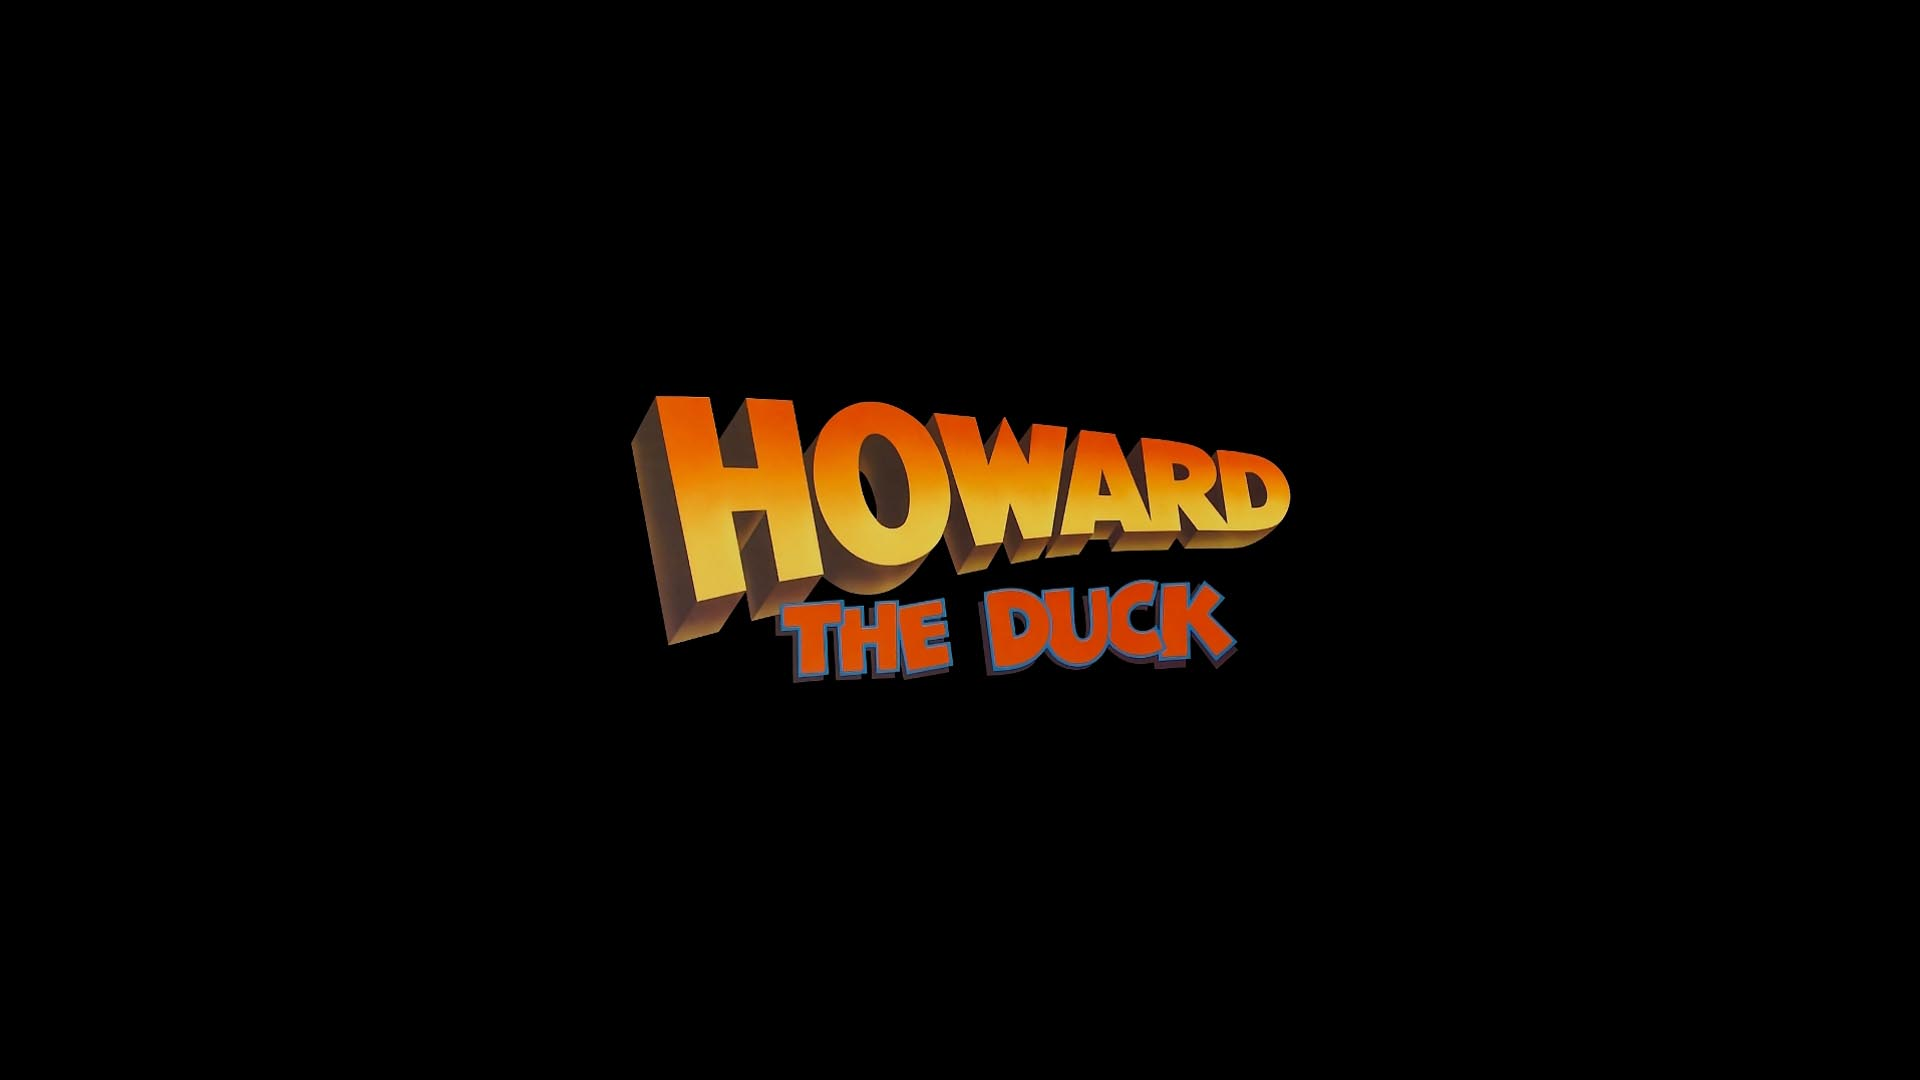 Howard The Duck HD Wallpaper Background Image 1920x1080 ID 1920x1080